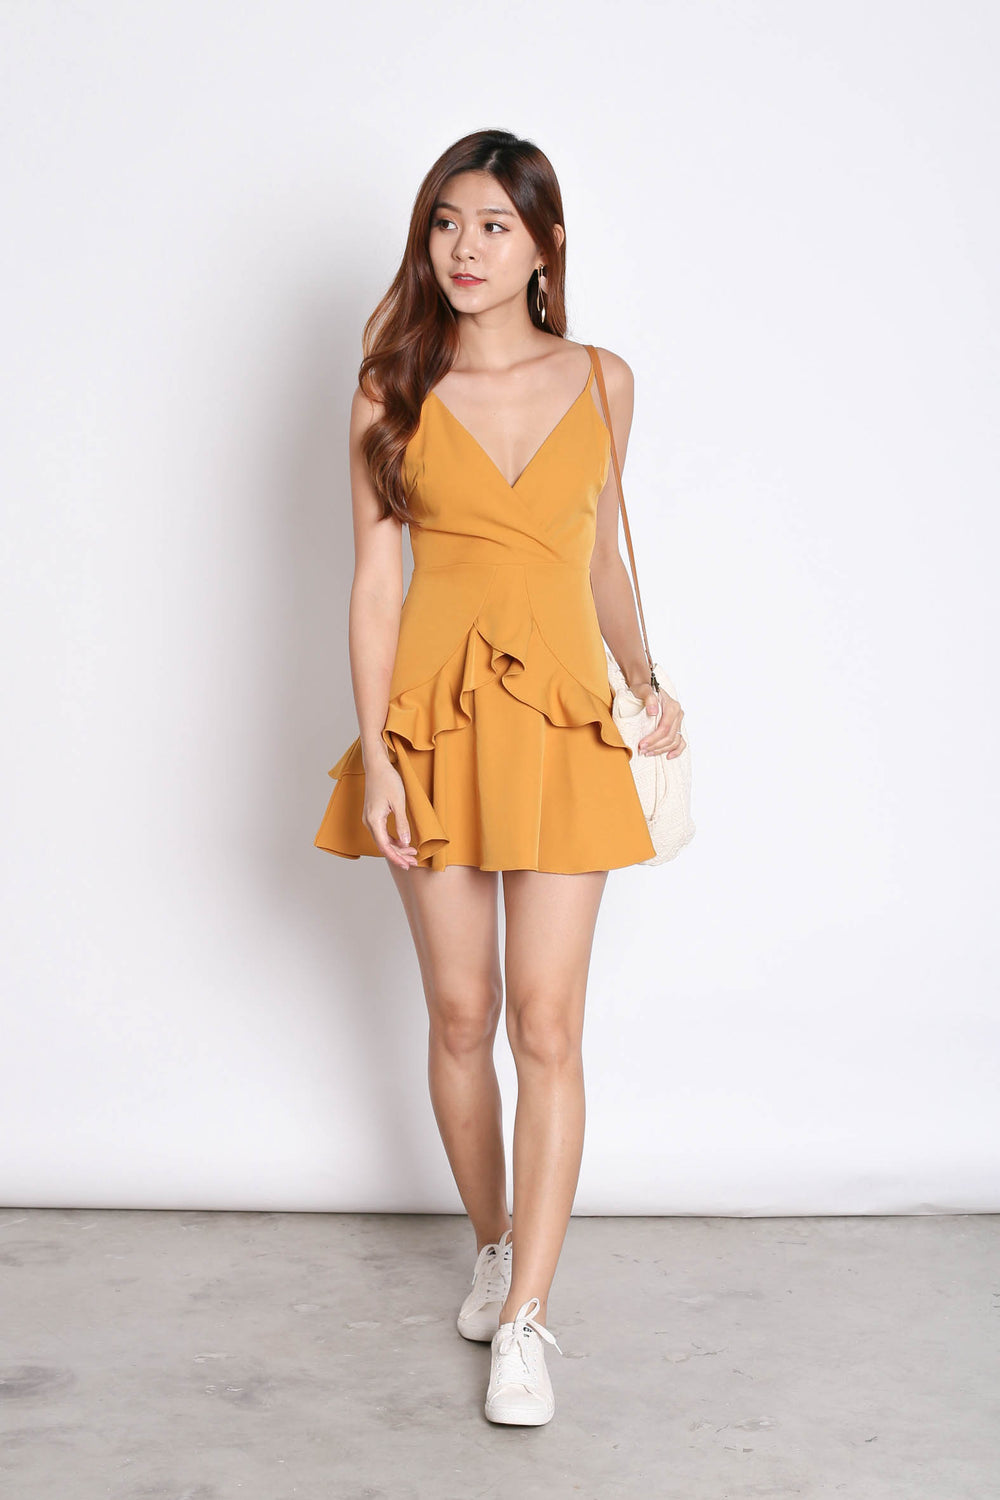 *TPZ* (PREMIUM) SAGE RUFFLES DRESS ROMPER IN MARIGOLD